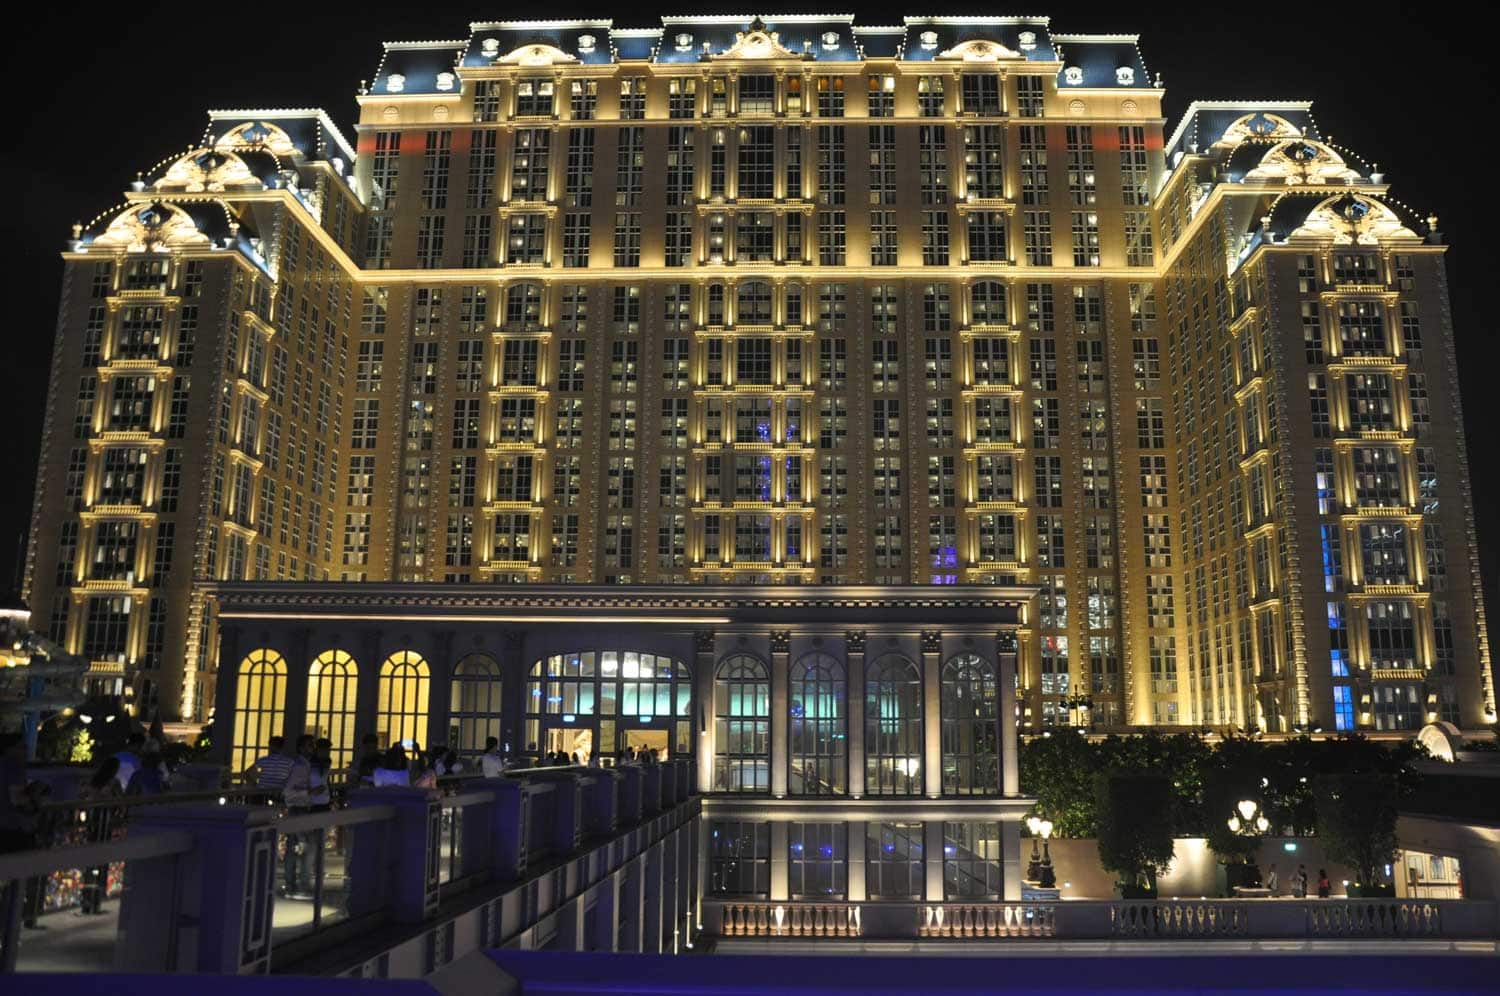 Parisian Macao night exterior